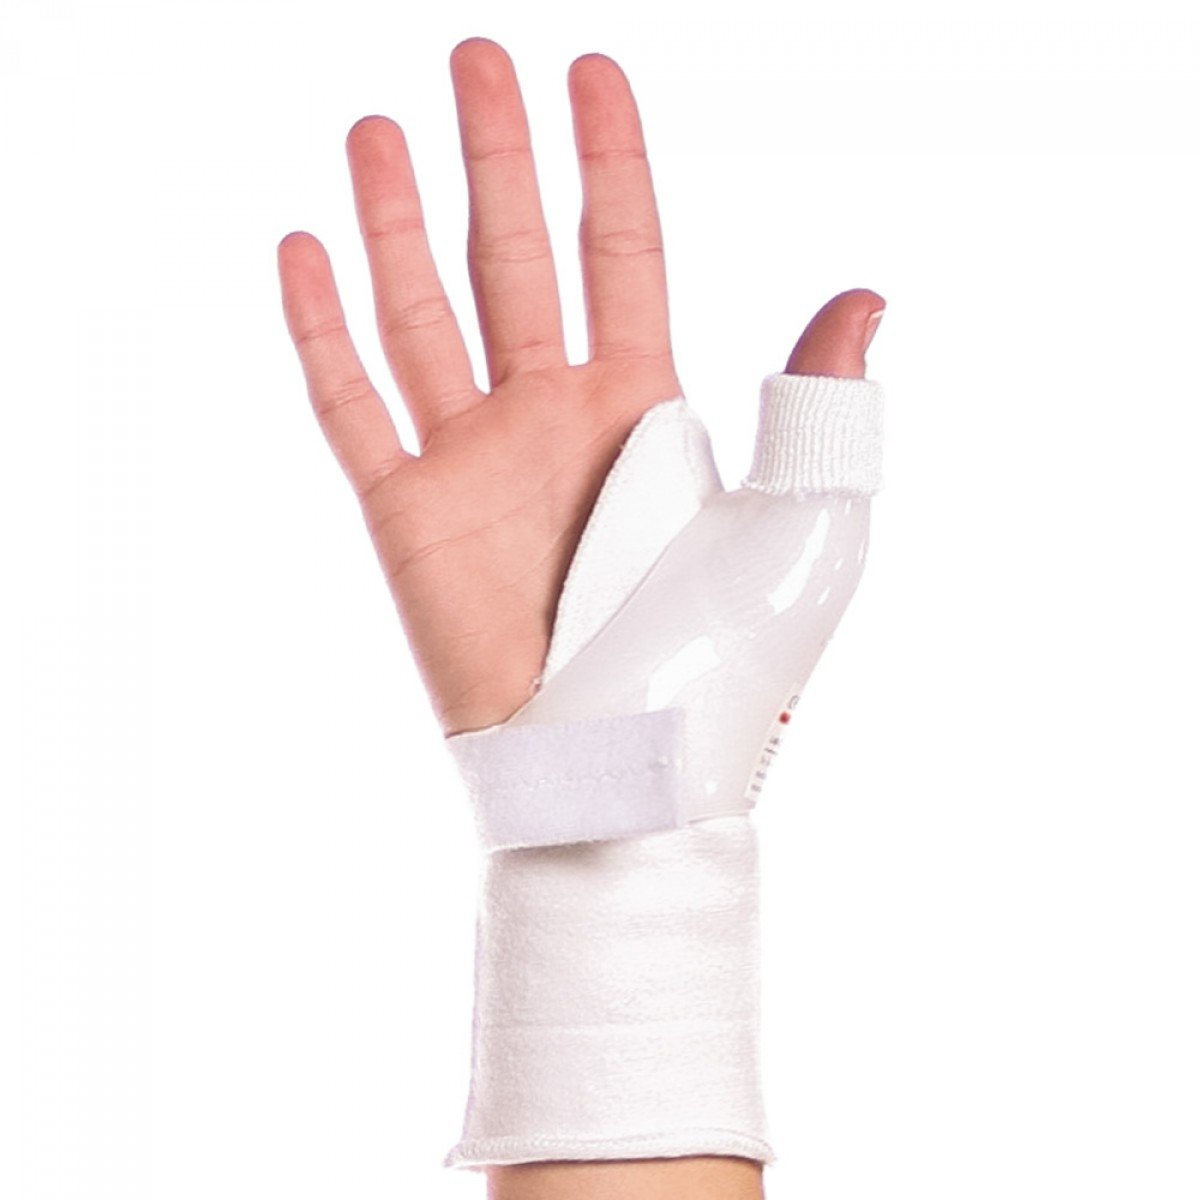 BraceAbility Skier's Thumb Brace | Treats UCL Ligament Injuries and Tears, Tendonitis, Immobilizes your Thumb Joint after Sprains, Fractures or Surgery (S - Right Hand)